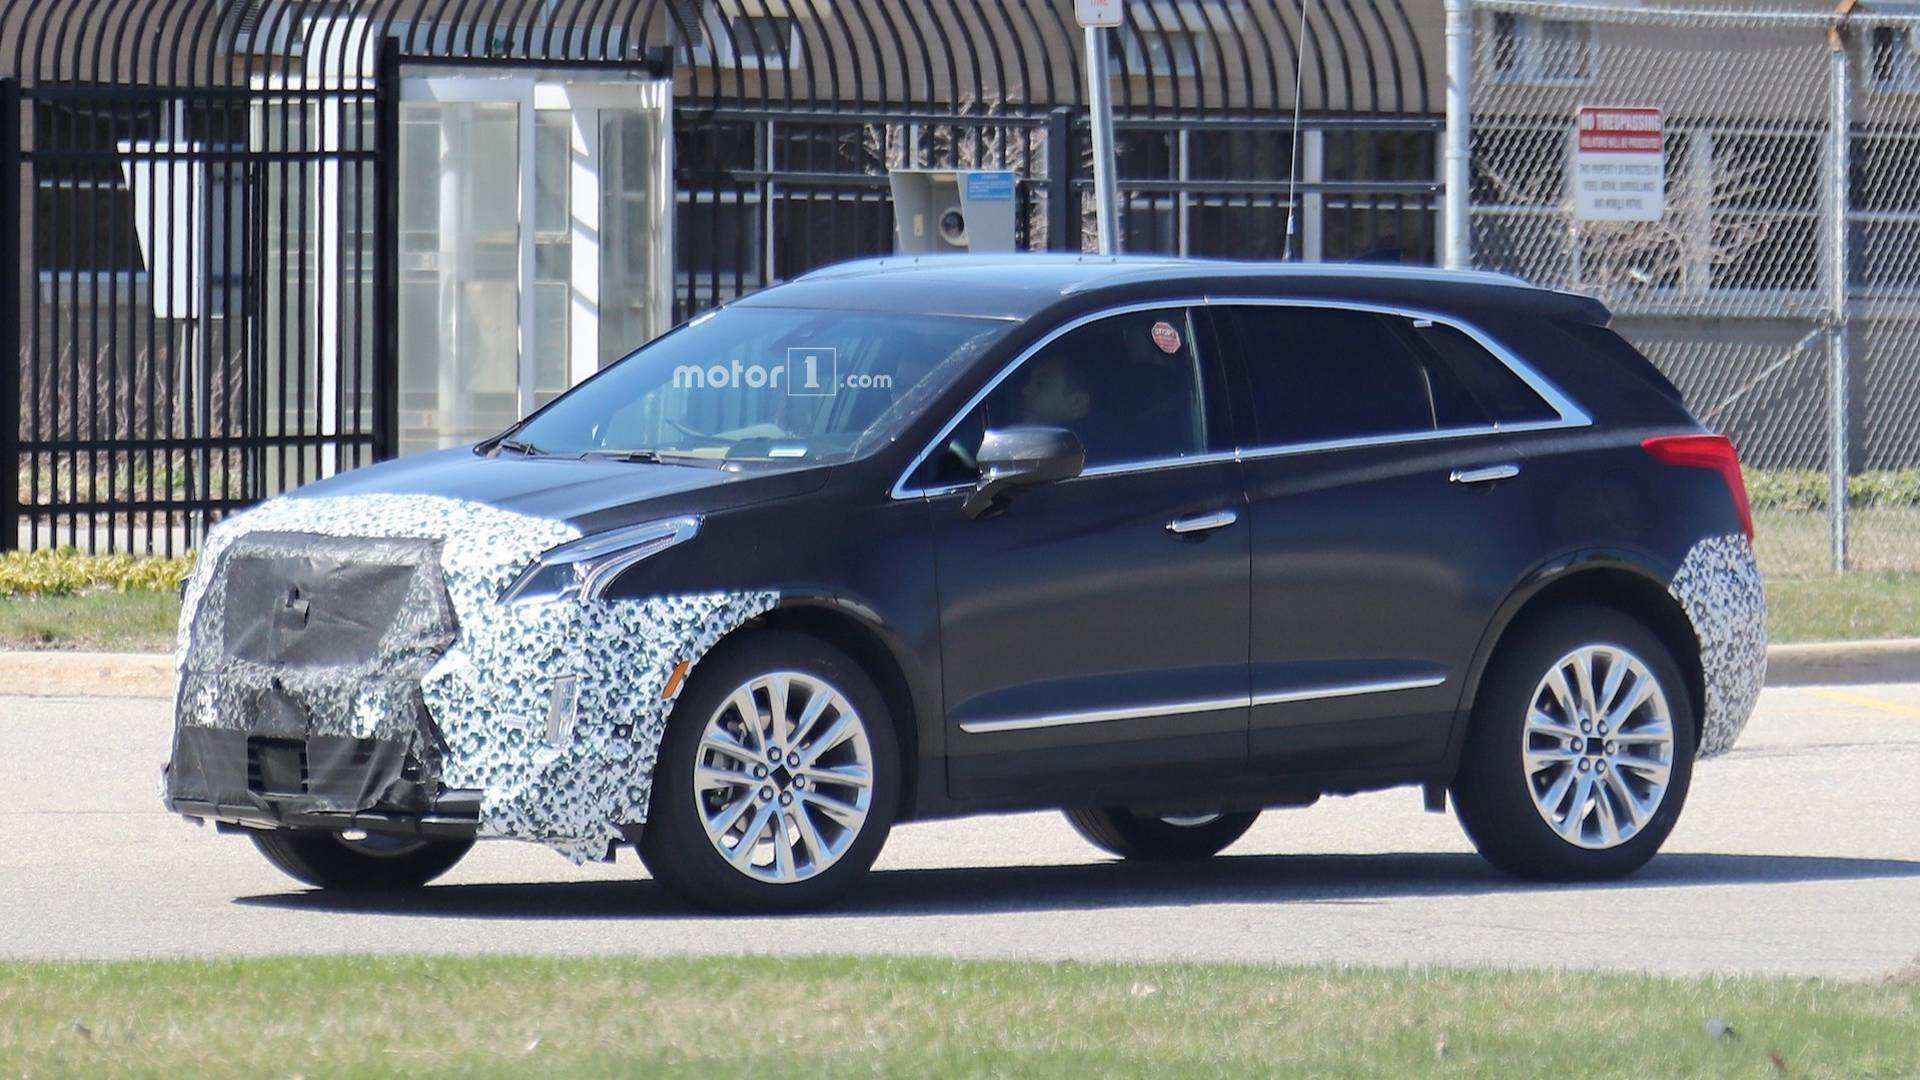 40 Great 2019 Spy Shots Cadillac Xt5 Price and Review for 2019 Spy Shots Cadillac Xt5